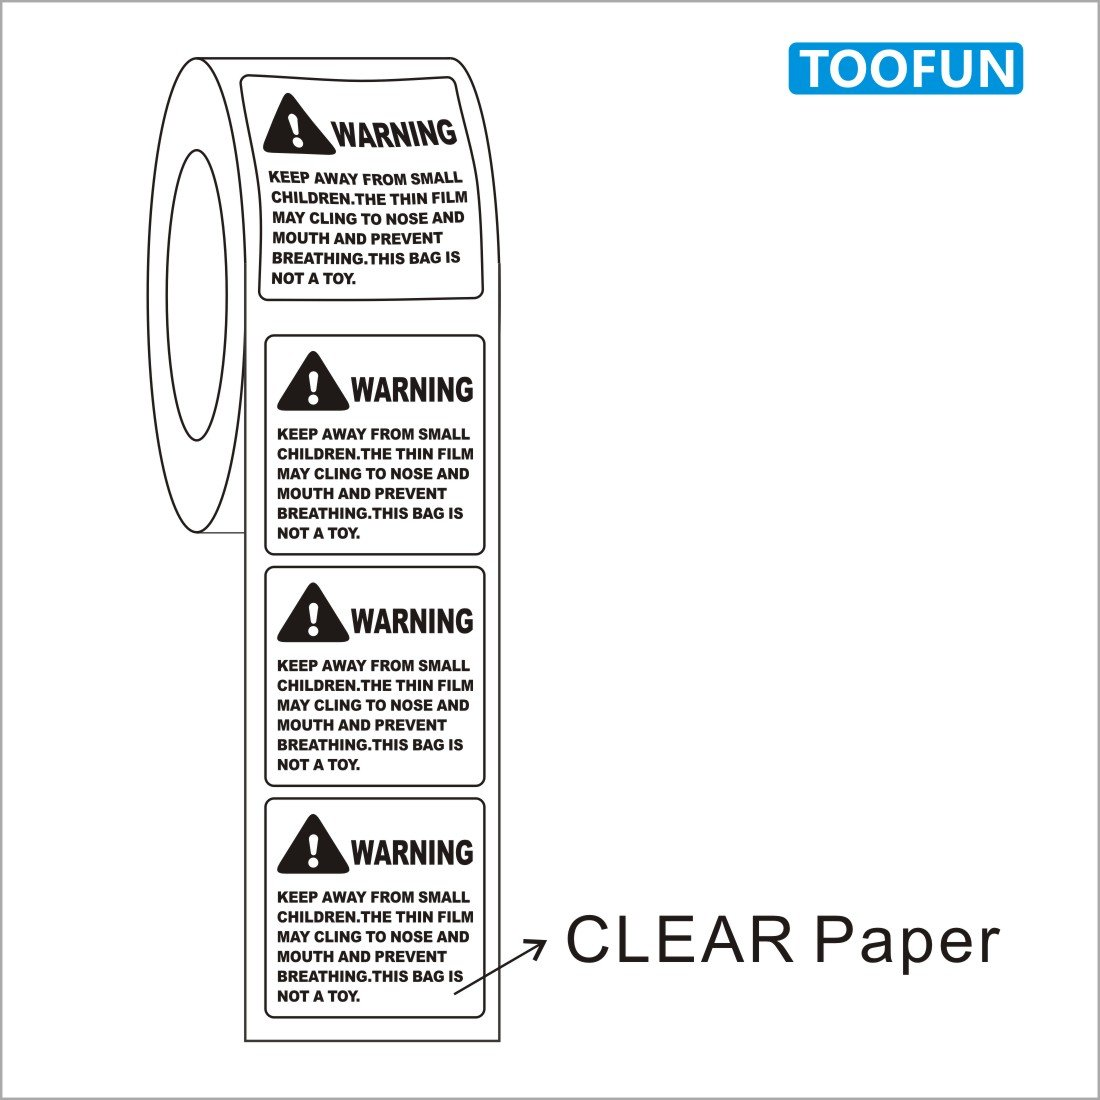 TOOFUN Suffocation Warning Labels, 1,000 Labels/Roll, 2'' X 2'', Peel and Stick, FBA Labels, Shipping Labels (Clear Warning Label) by TOOFUN (Image #2)